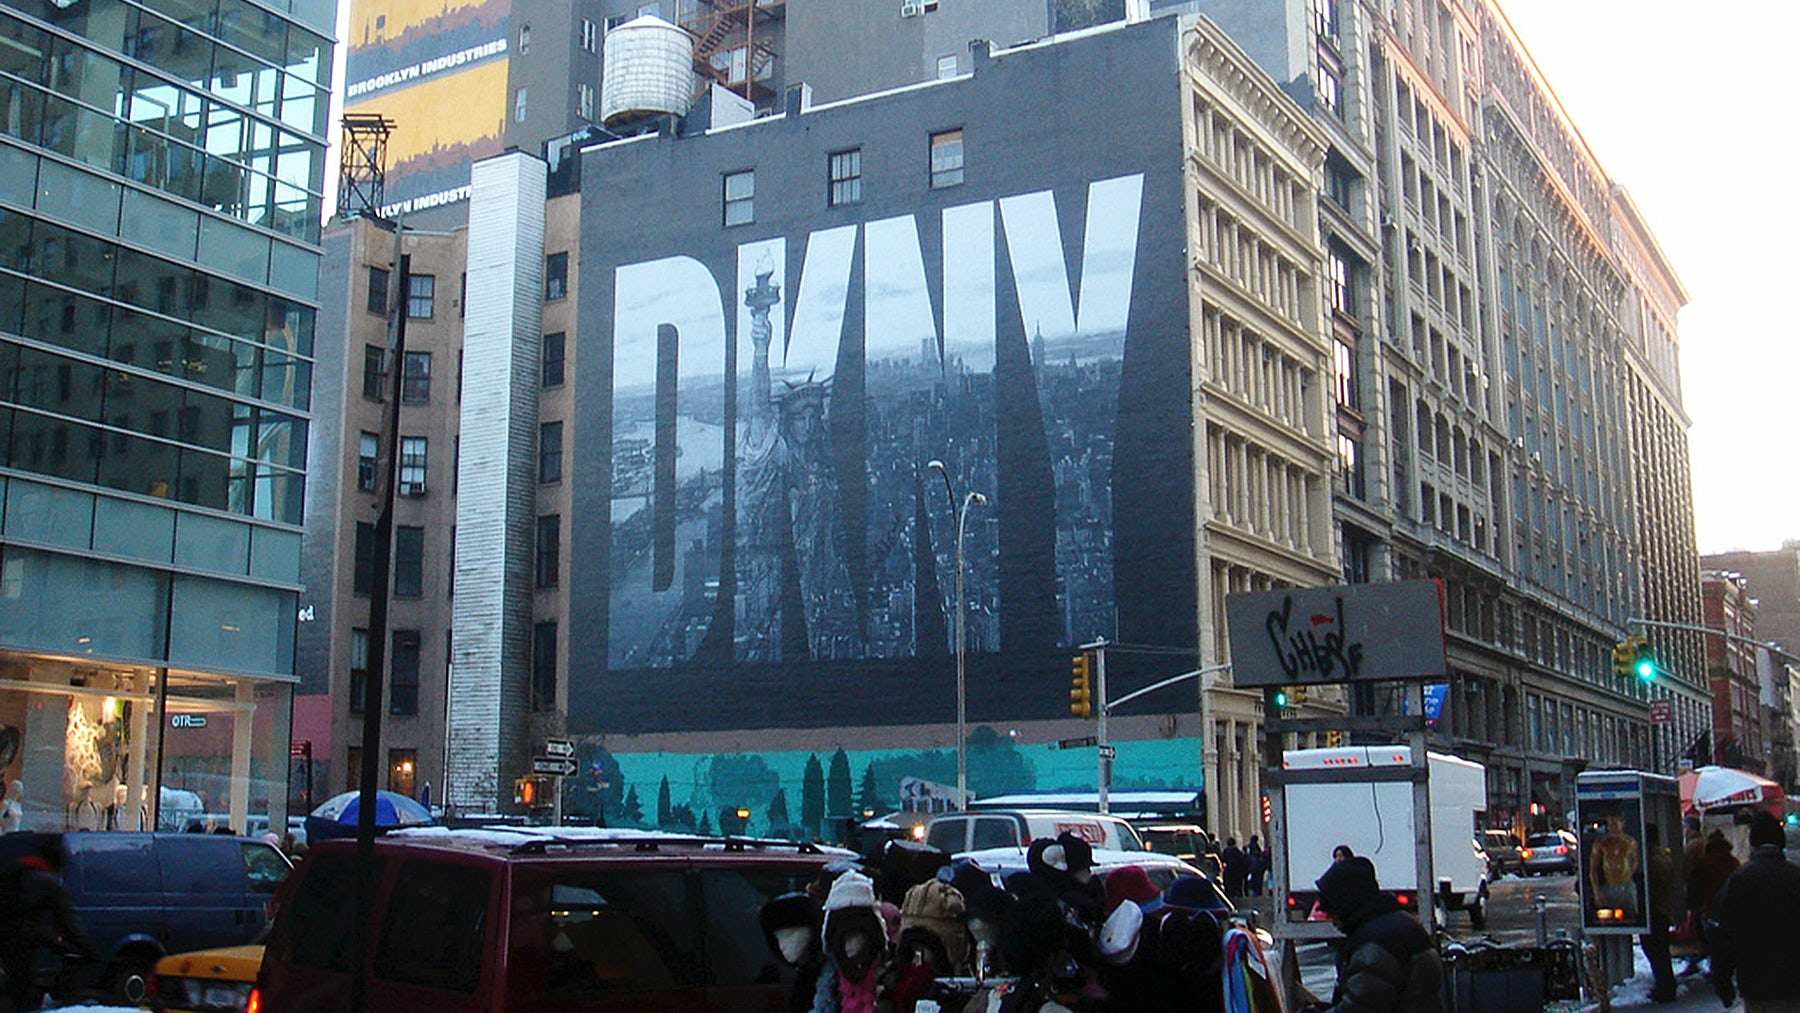 DKNY billboard in Soho, New York | Source: Flickr/Rob Smith